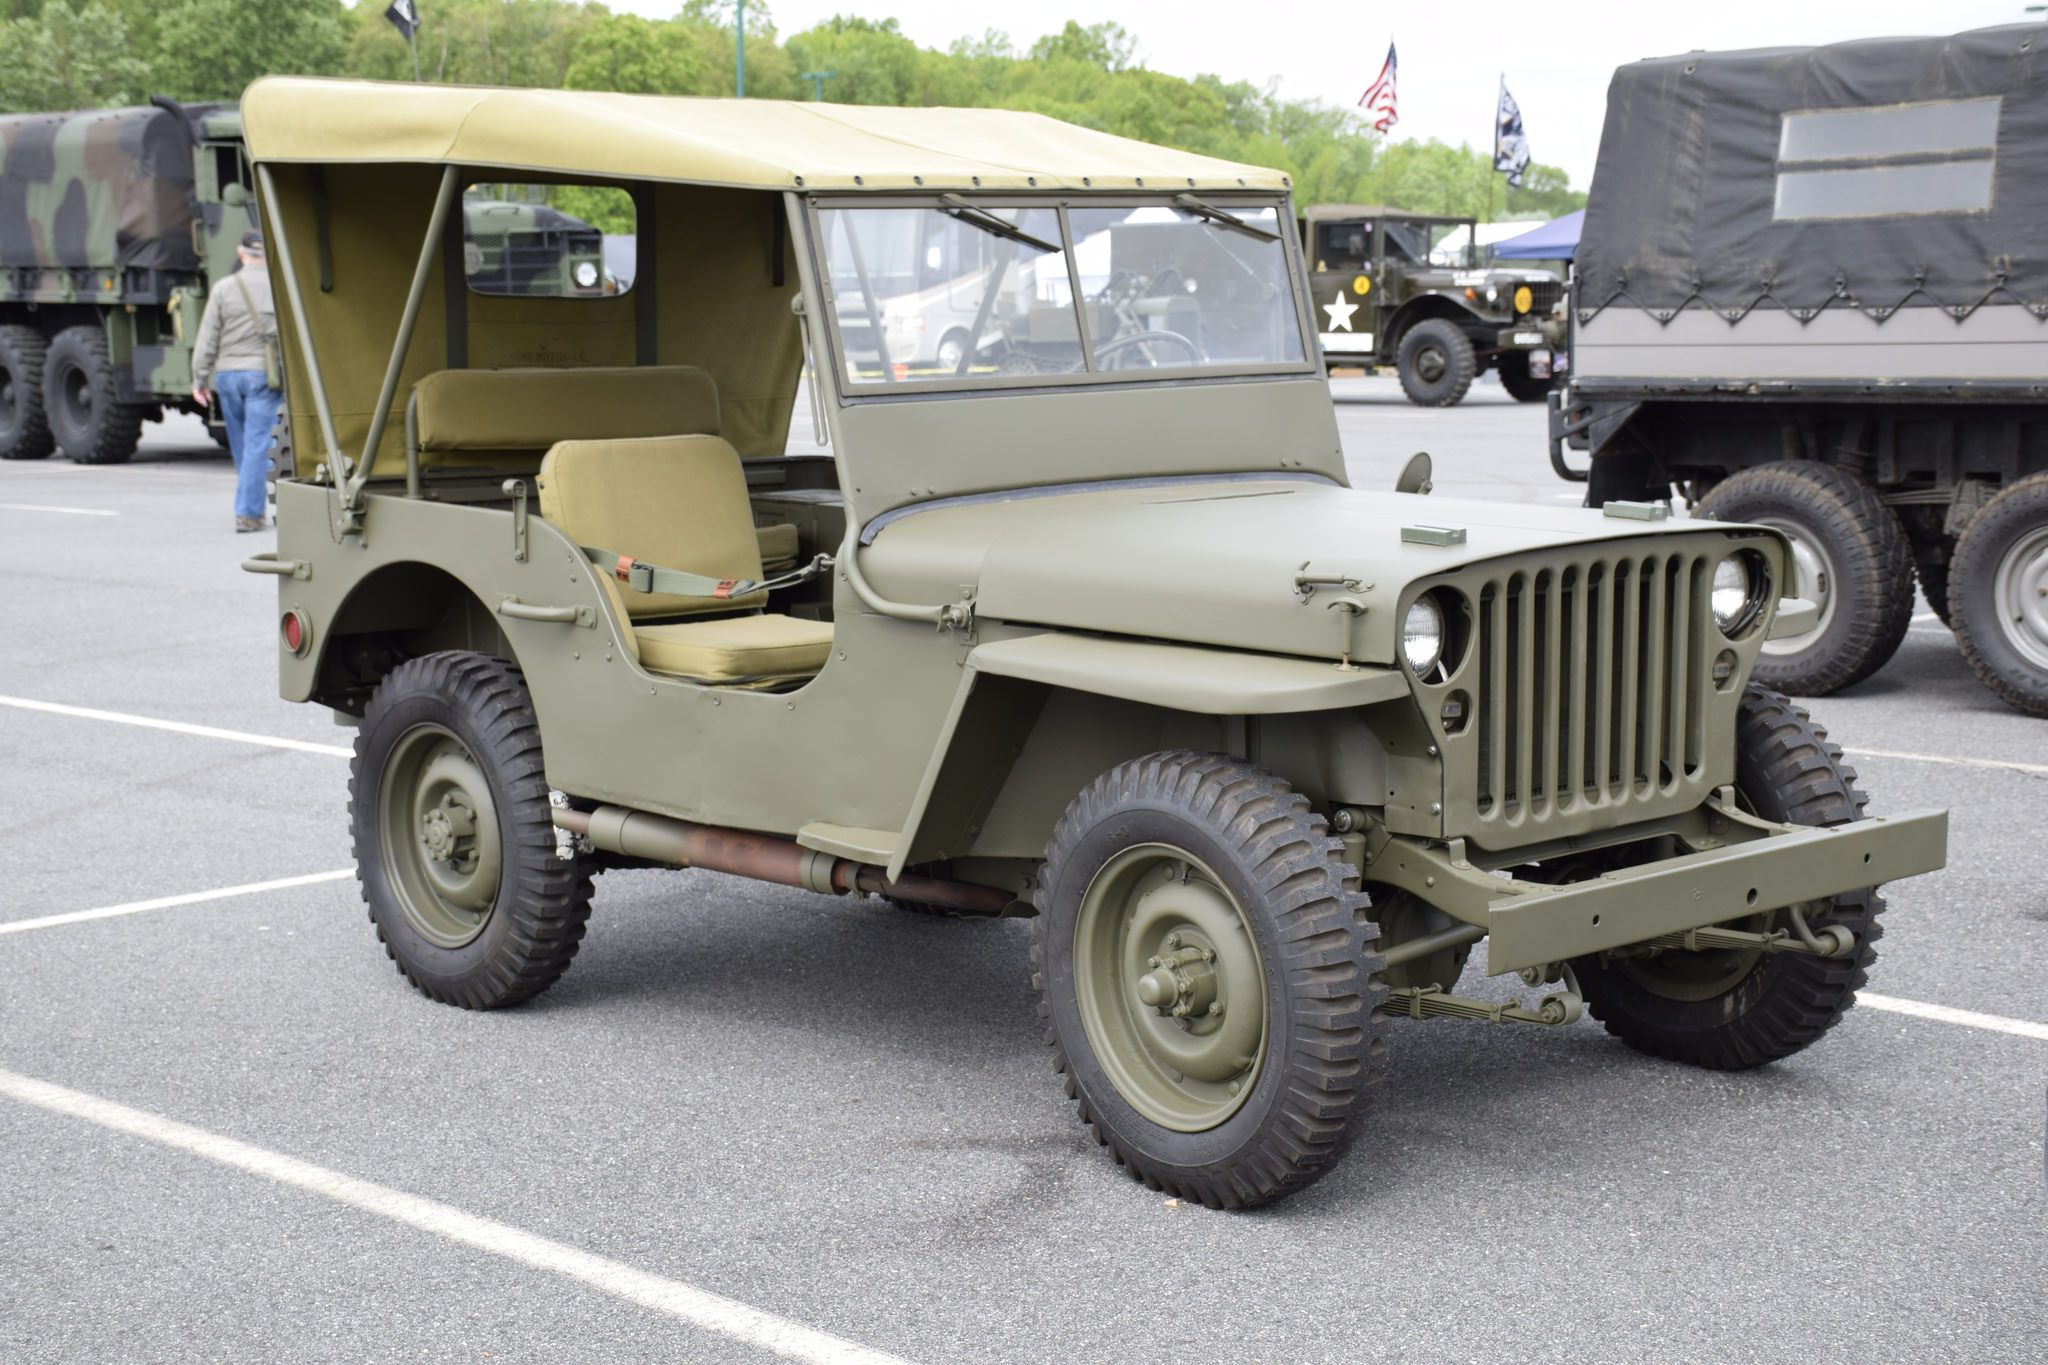 Ford jeep front with images military vehicles